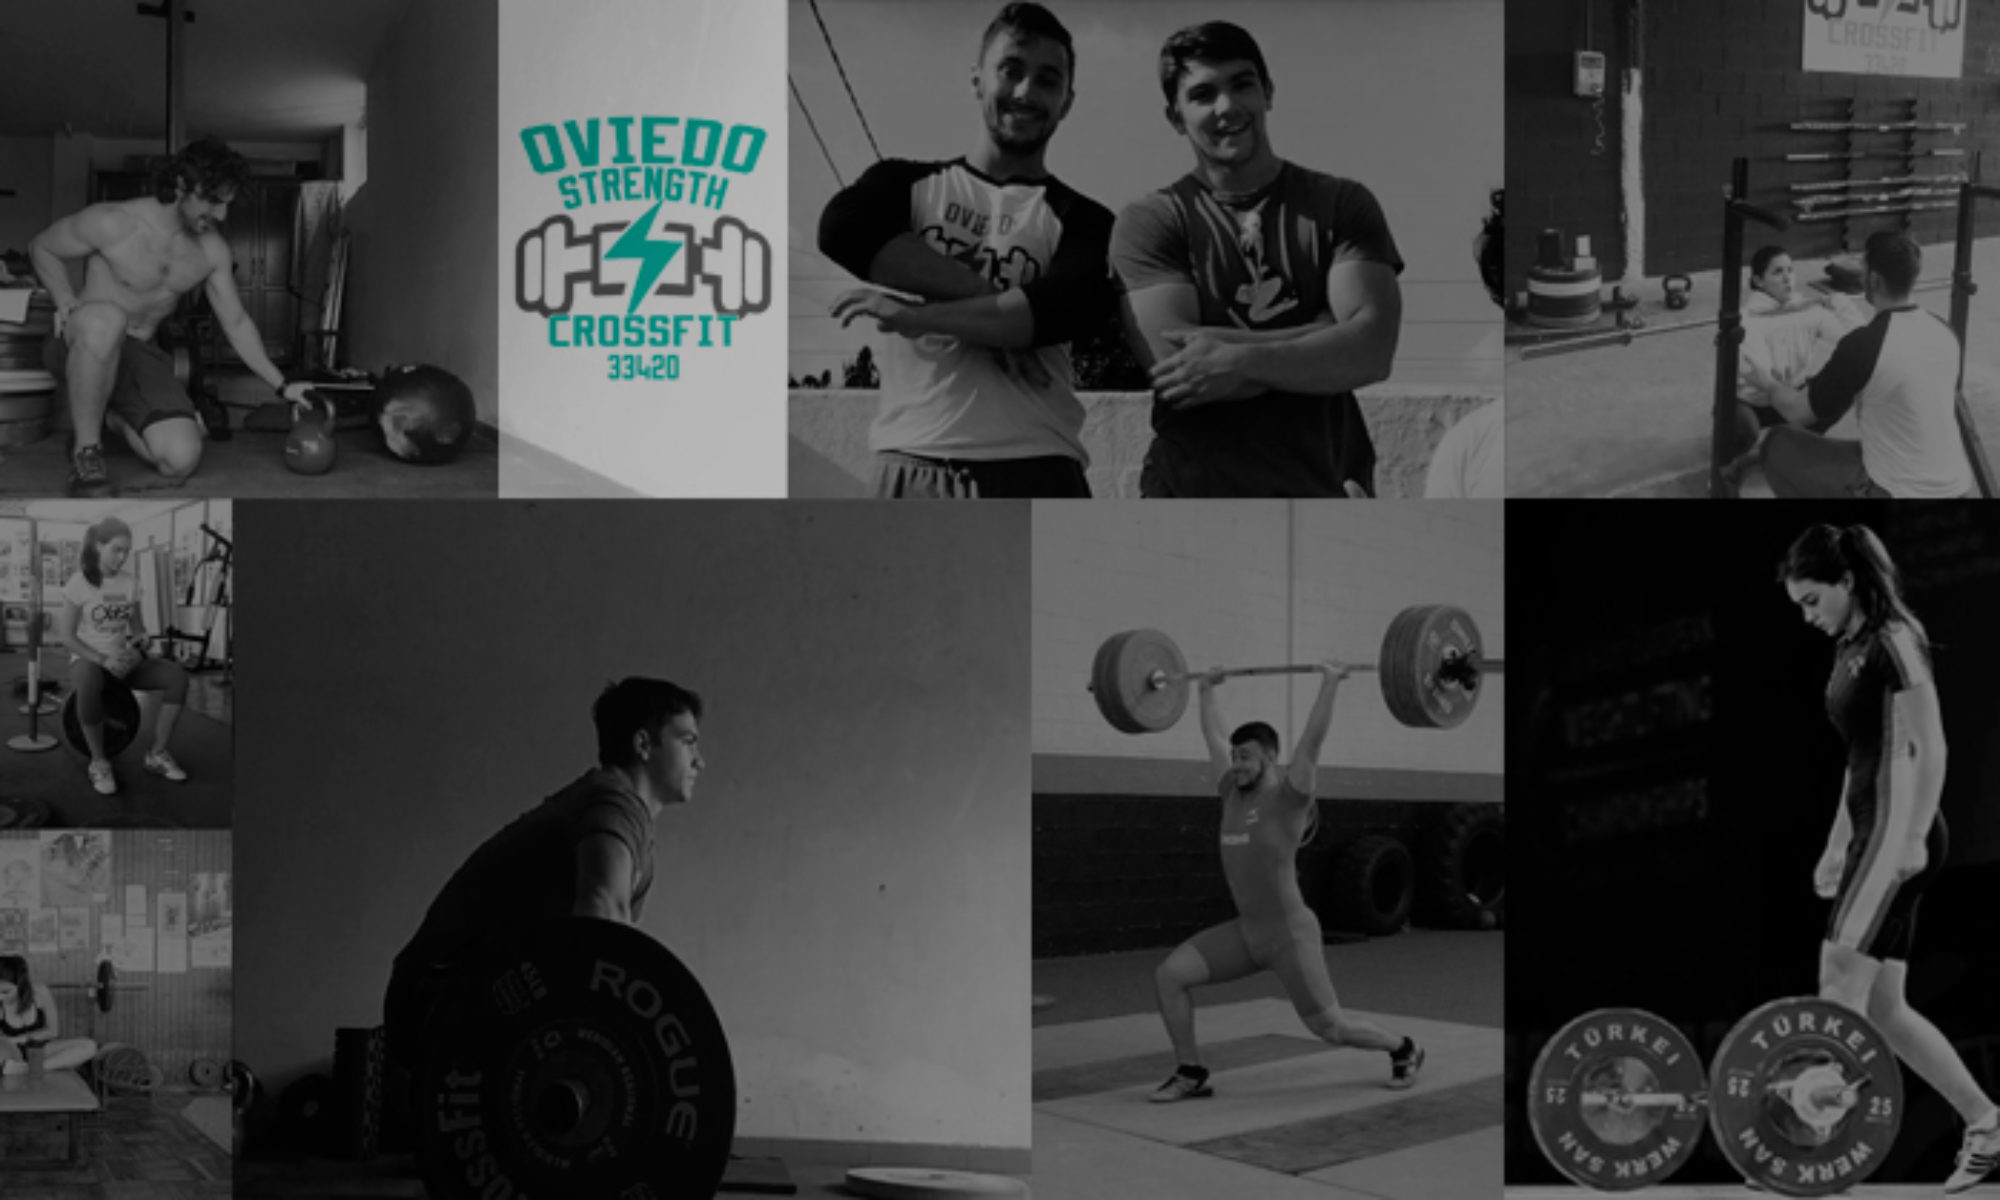 Oviedo Strength - Blog